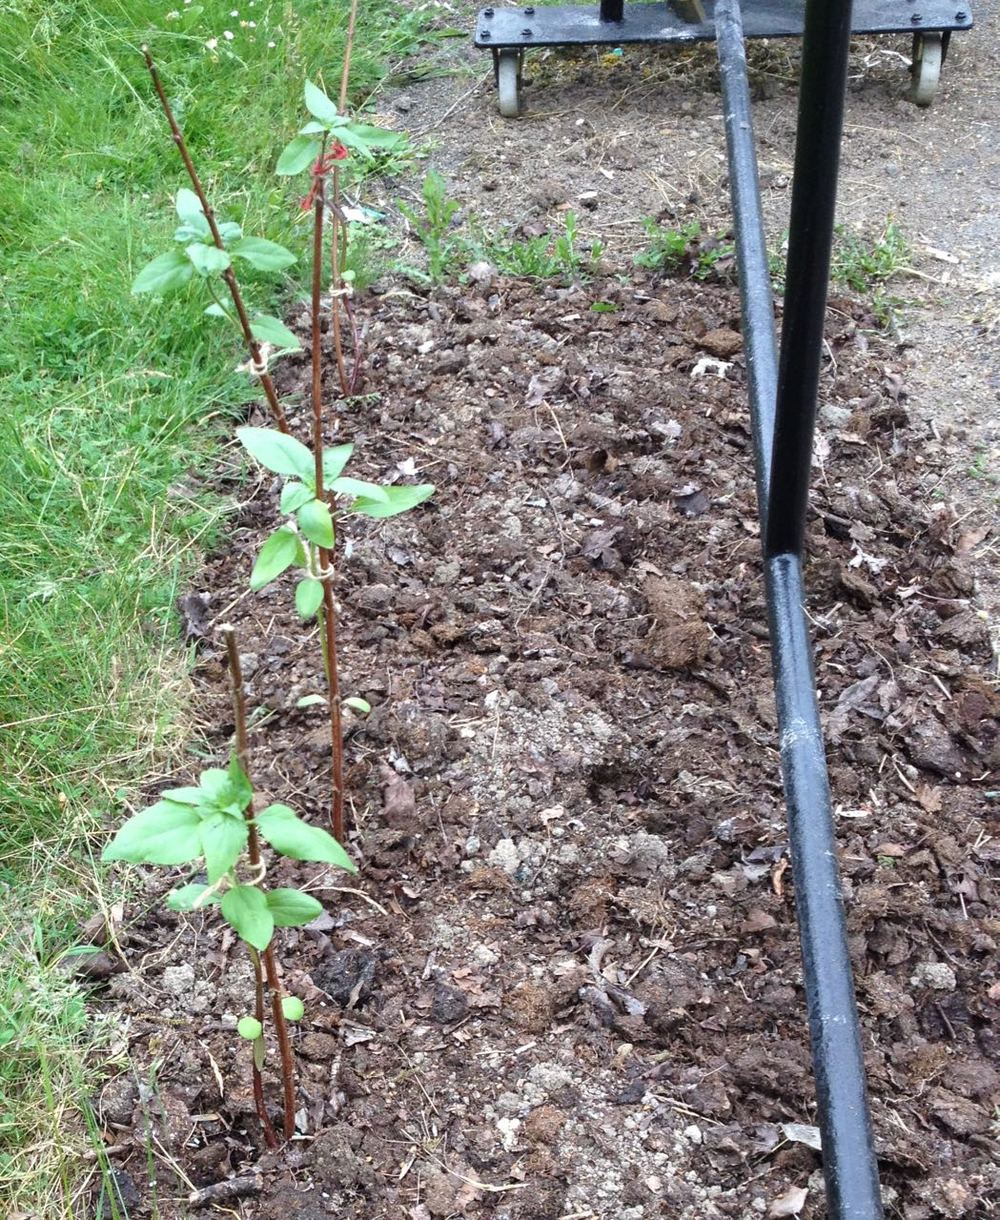 The sunflowers (seeds from a local allotment) should reach abut 6ft and be multi-stemmed and red. We are waiting to get a longer piece of chain so we can attach them to bamboo canes up the chained hatracks.